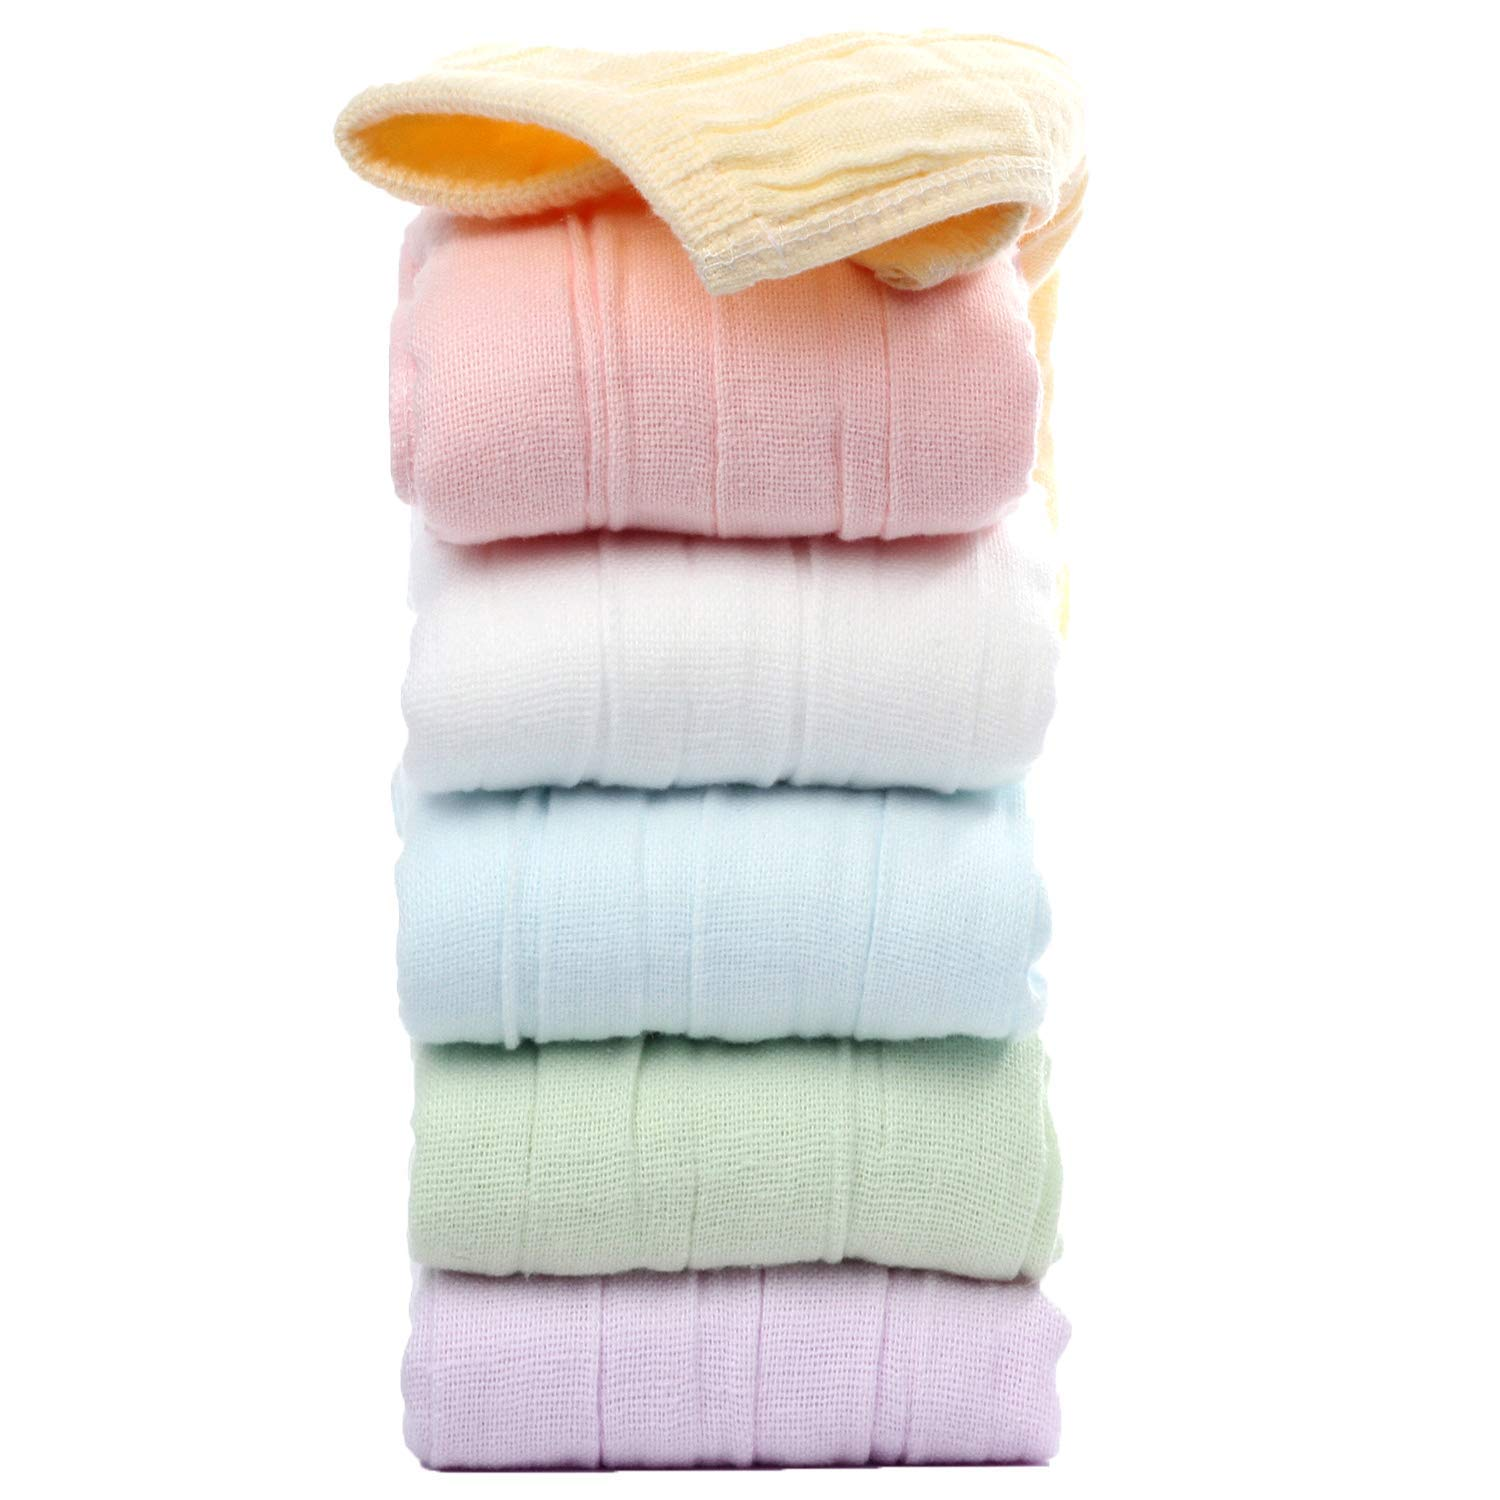 Baby Muslin Washcloths and Towels - Bamboo Cotton Baby Wipes Soft Face Cleaning Bath Wash Cloths for Newborn Kids Baby Boy/Girl and Sensitive Skin Baby Shower Gift  10''x10'' Flexible Large 6 Pack by HappyBear